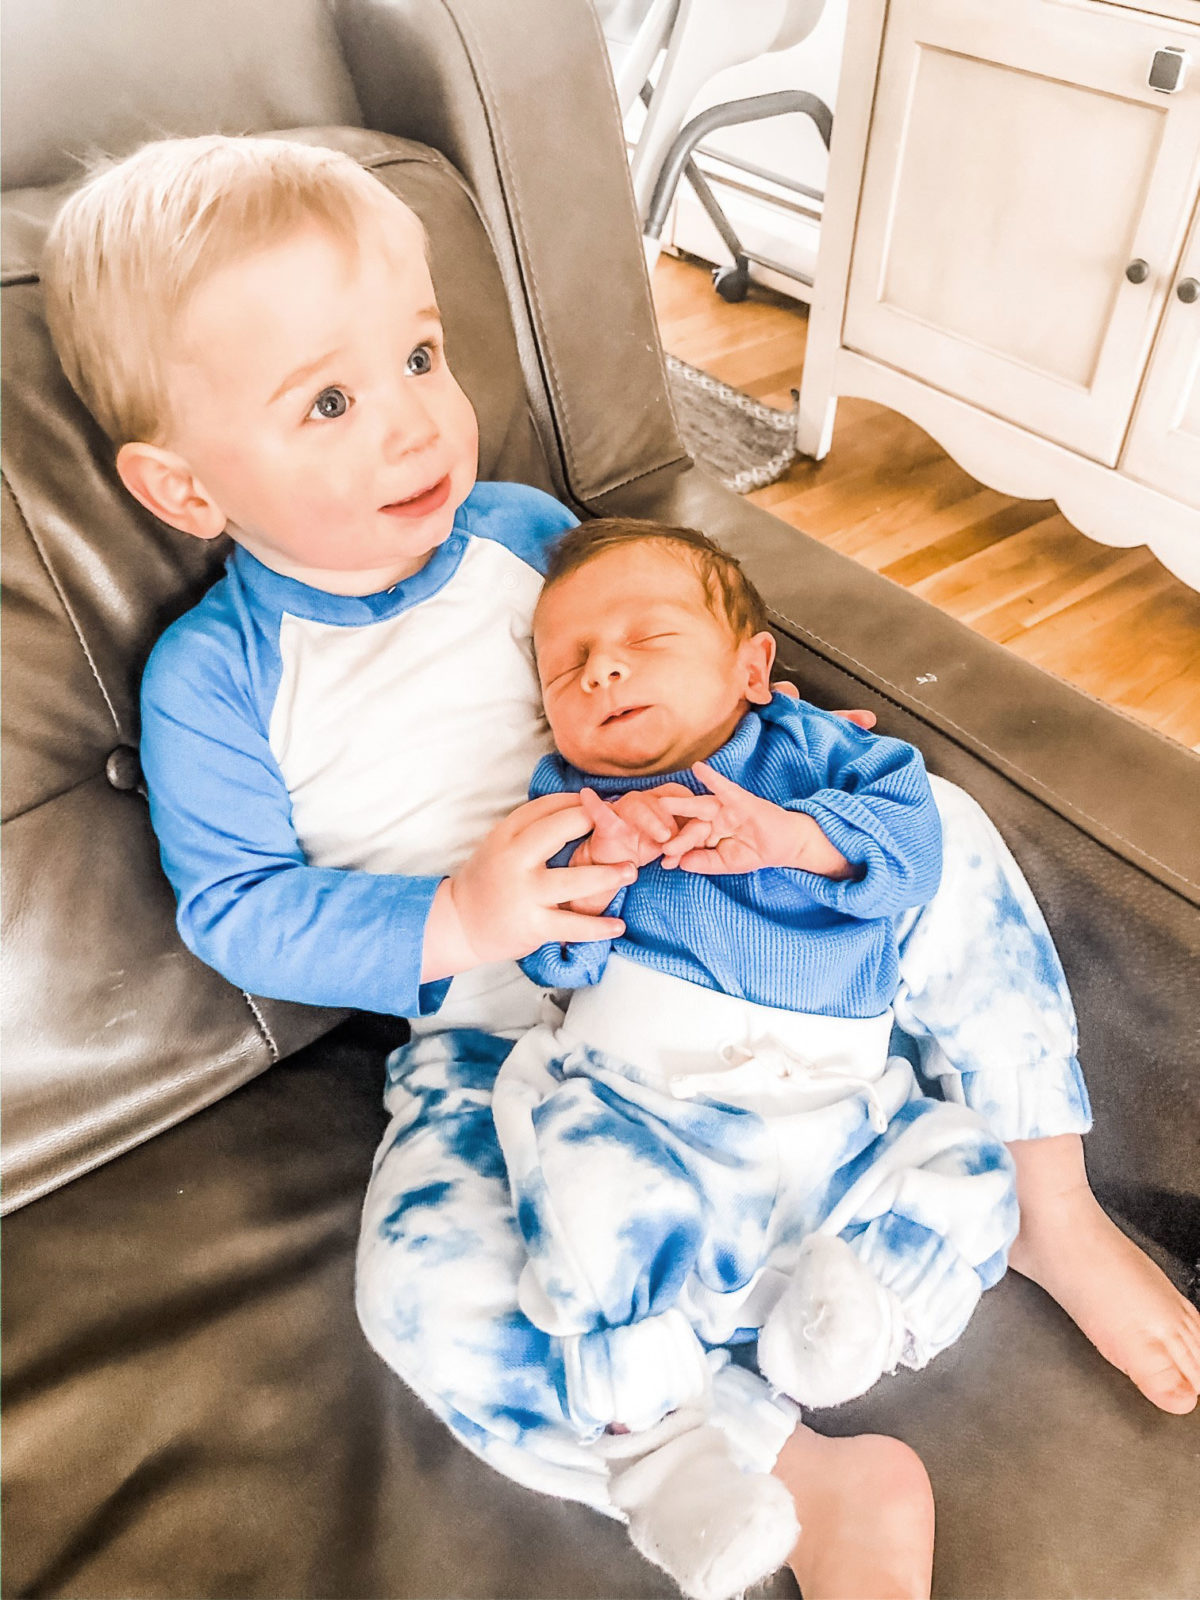 Boy and Baby